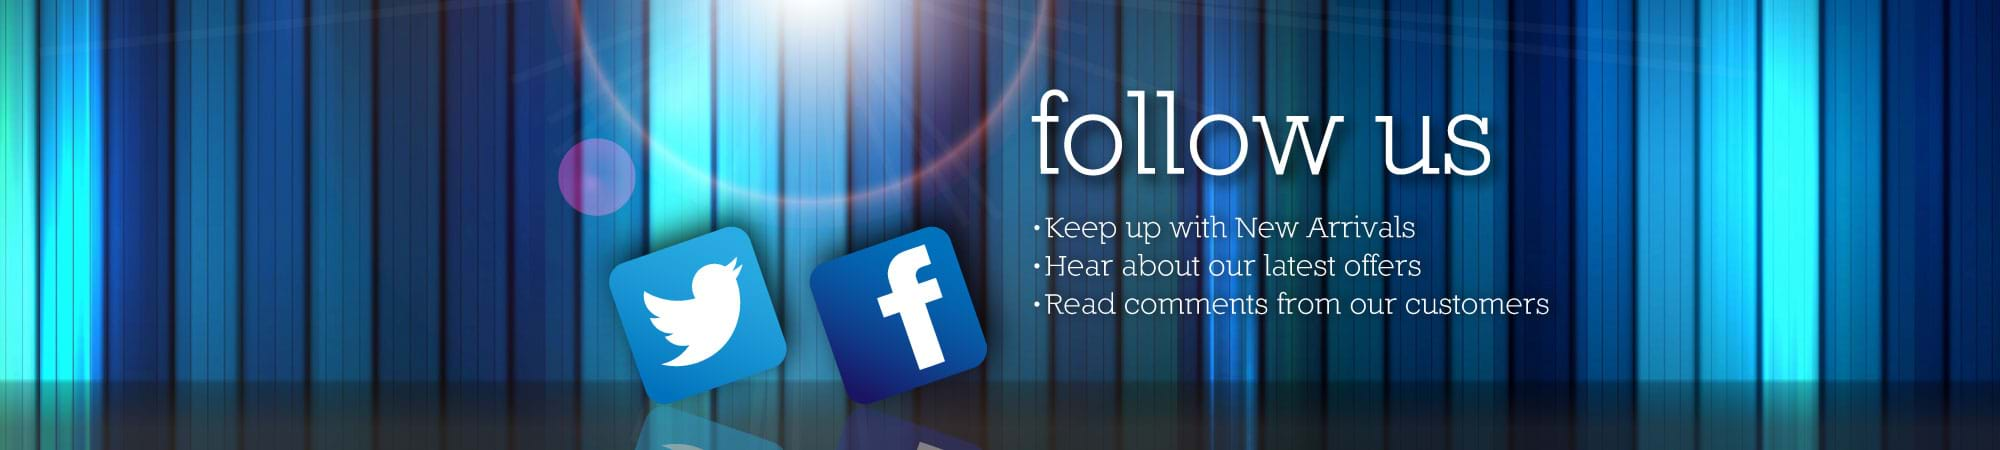 Follow Sixers Group on Twitter and Facebook